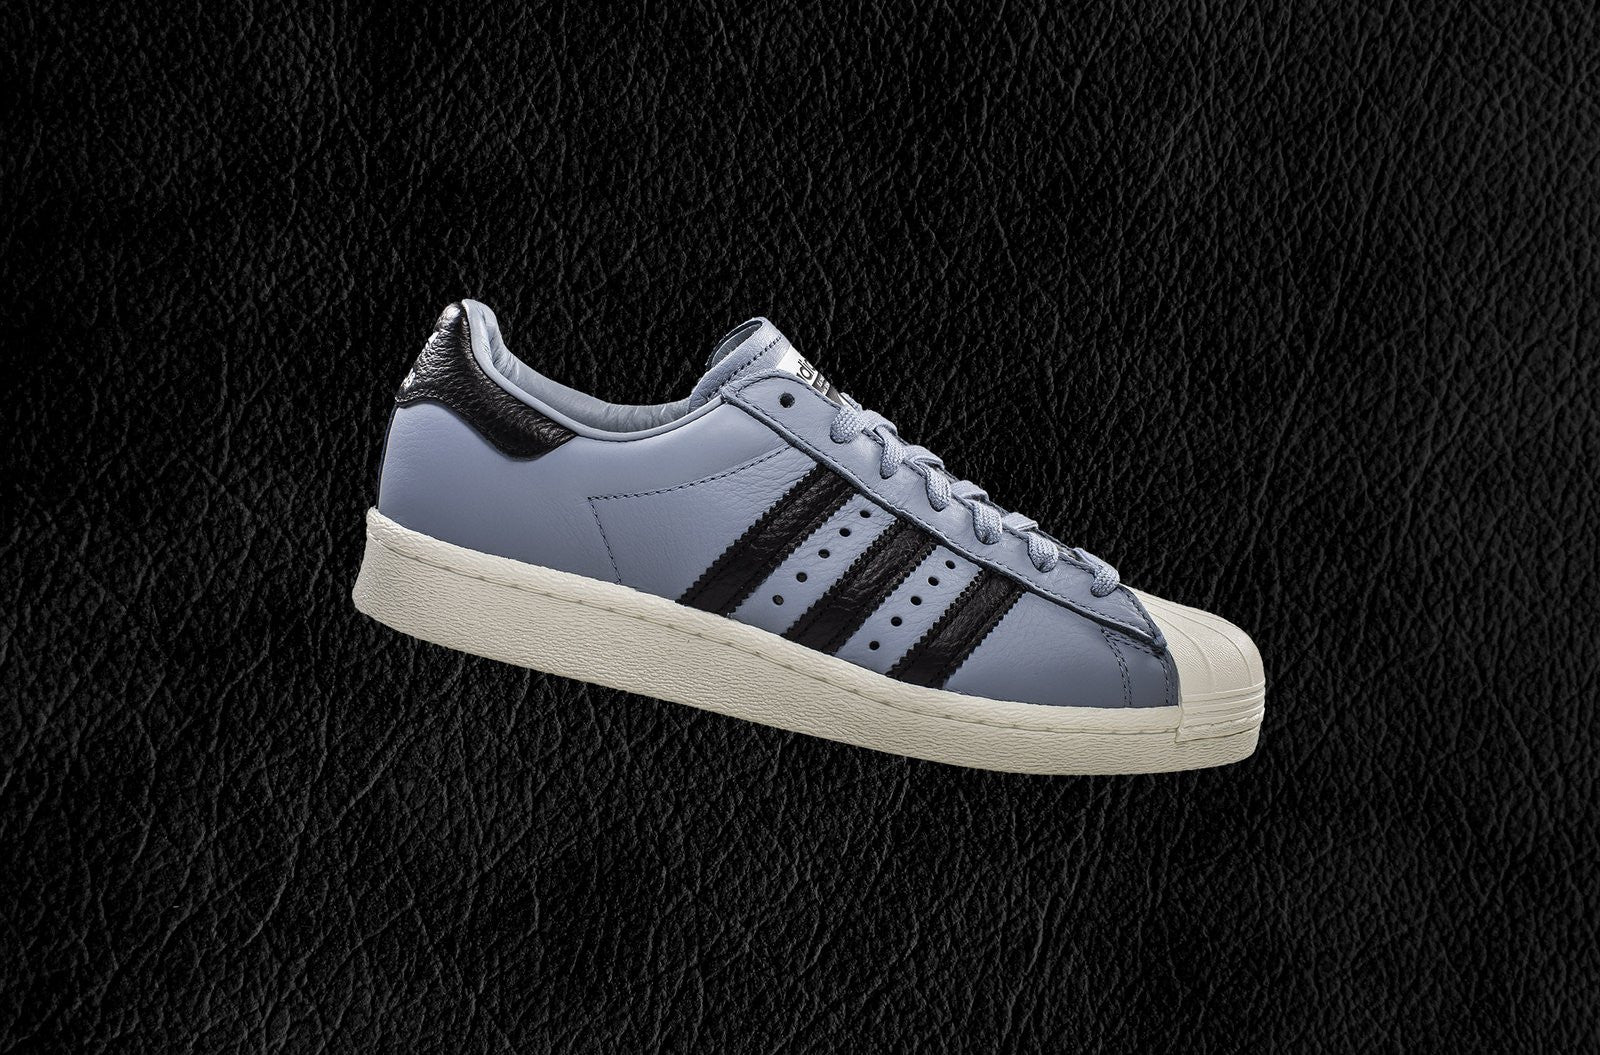 Cheap Adidas Superstar 80s Primek, Men's Sneakers.uk: Shoes